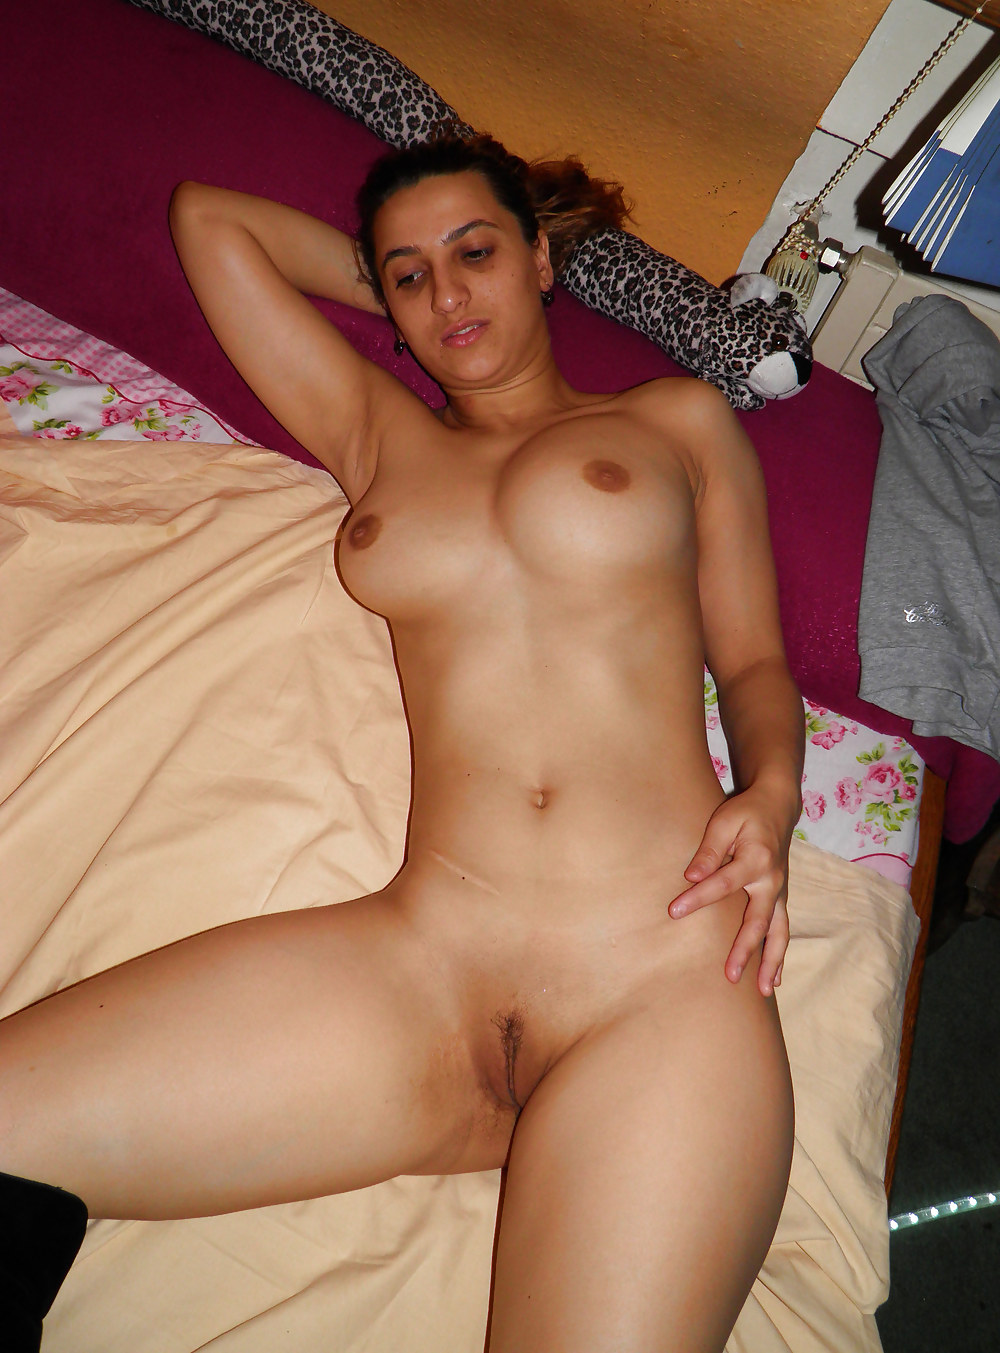 Awesome turkish thin girl ixxx vids for free, related